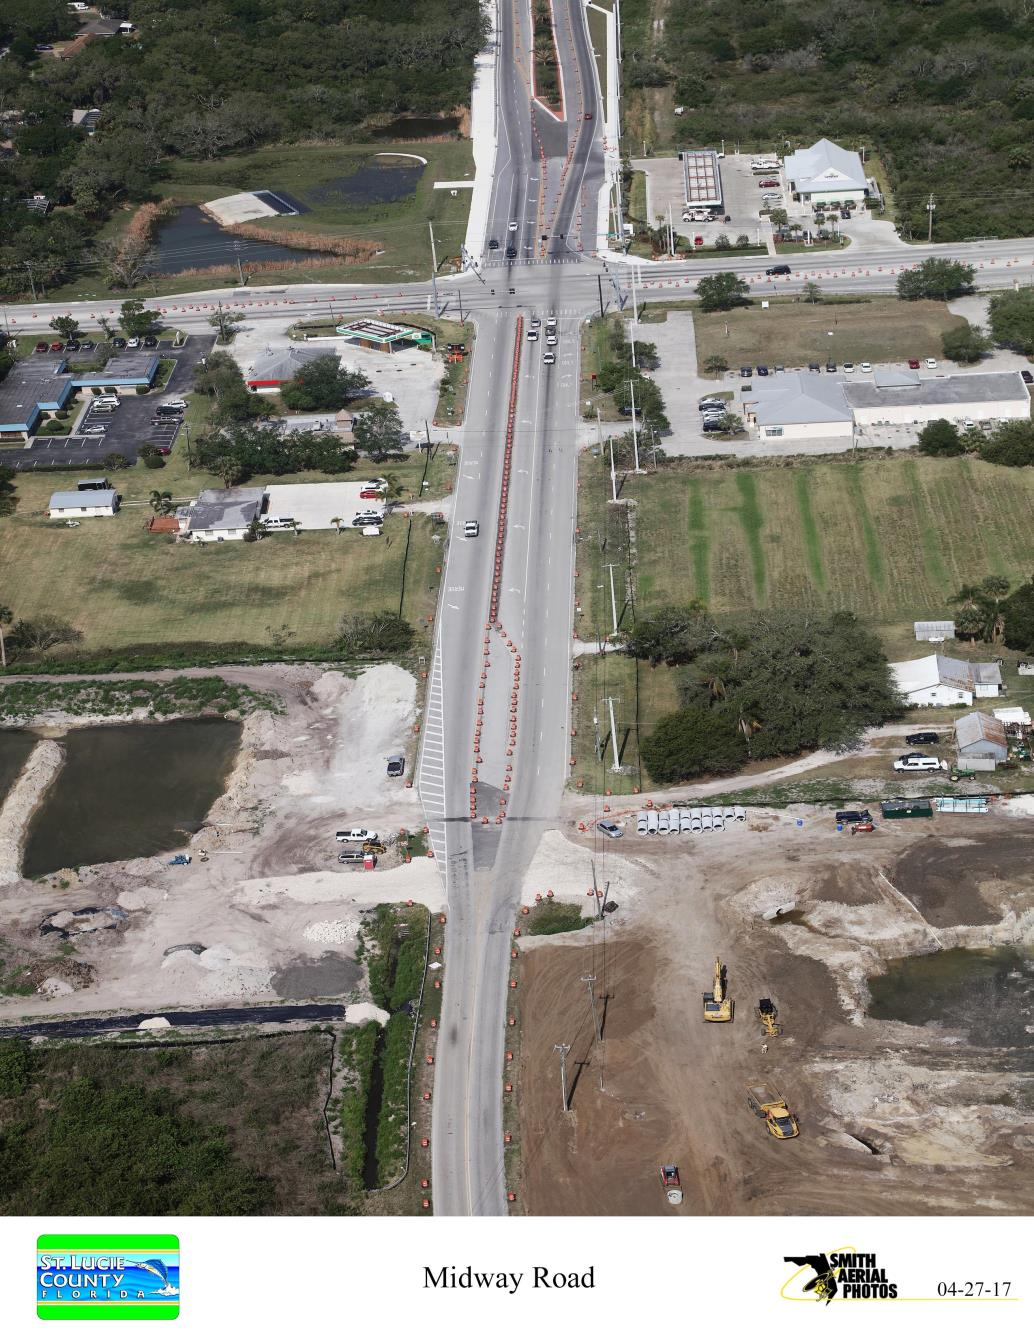 Aerials_12-017_04_27_17_Midway Rd looking west to 25th Street